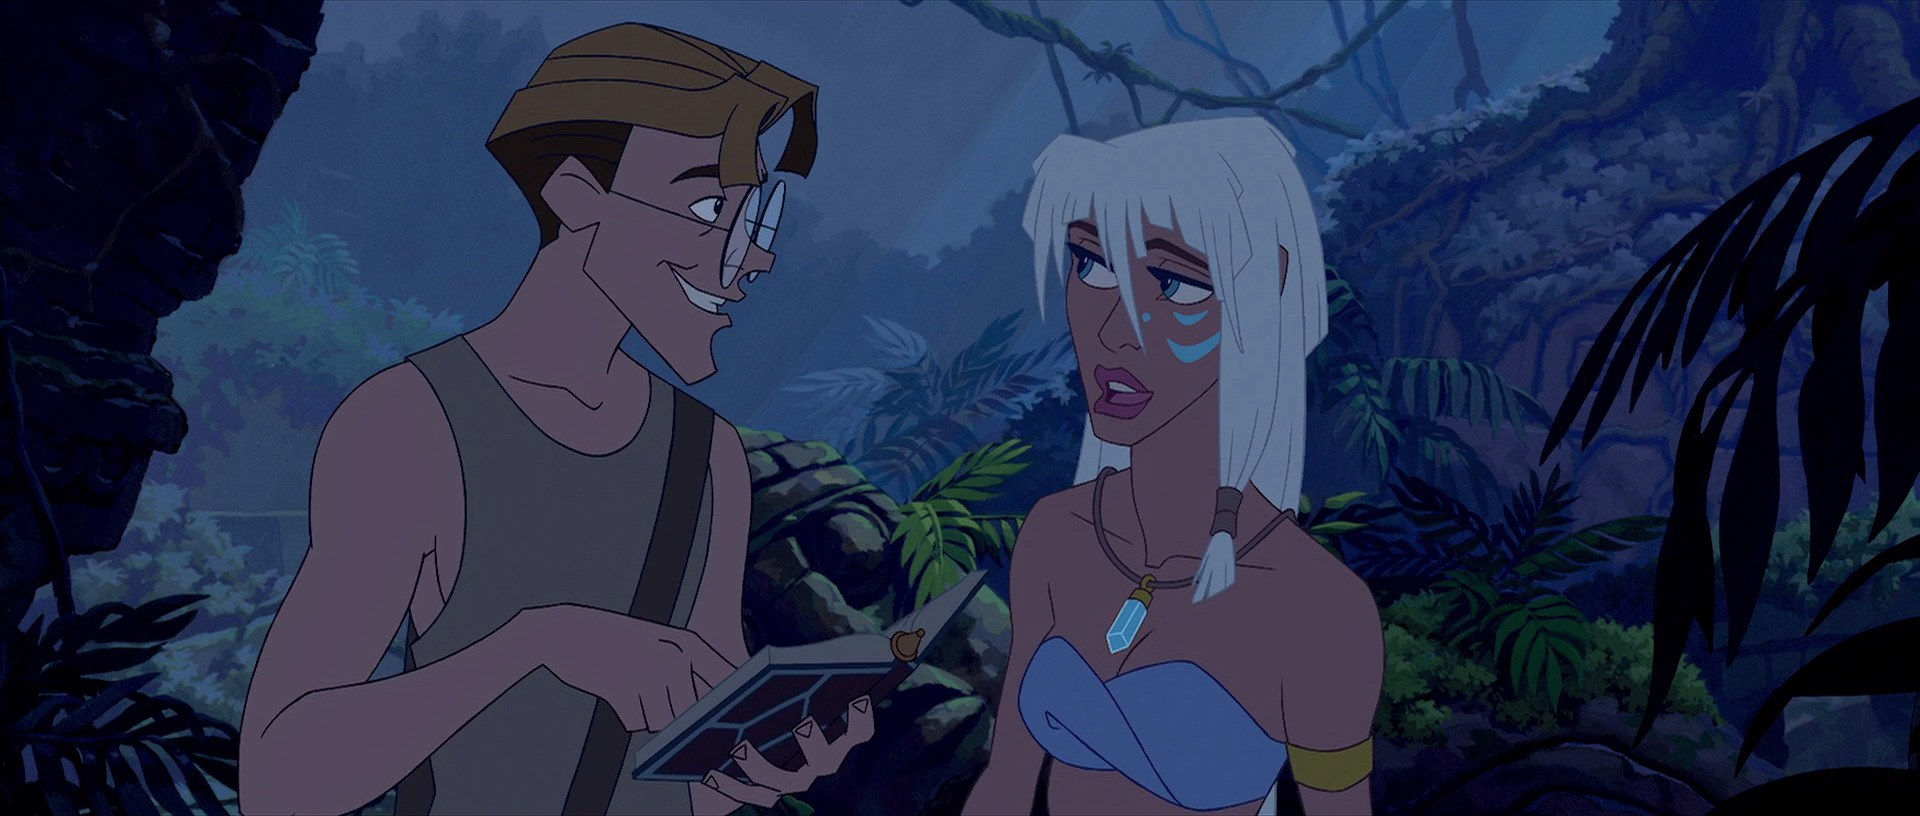 Milo and Kida stand in a jungle, smiling at each other. Milo holds a book.